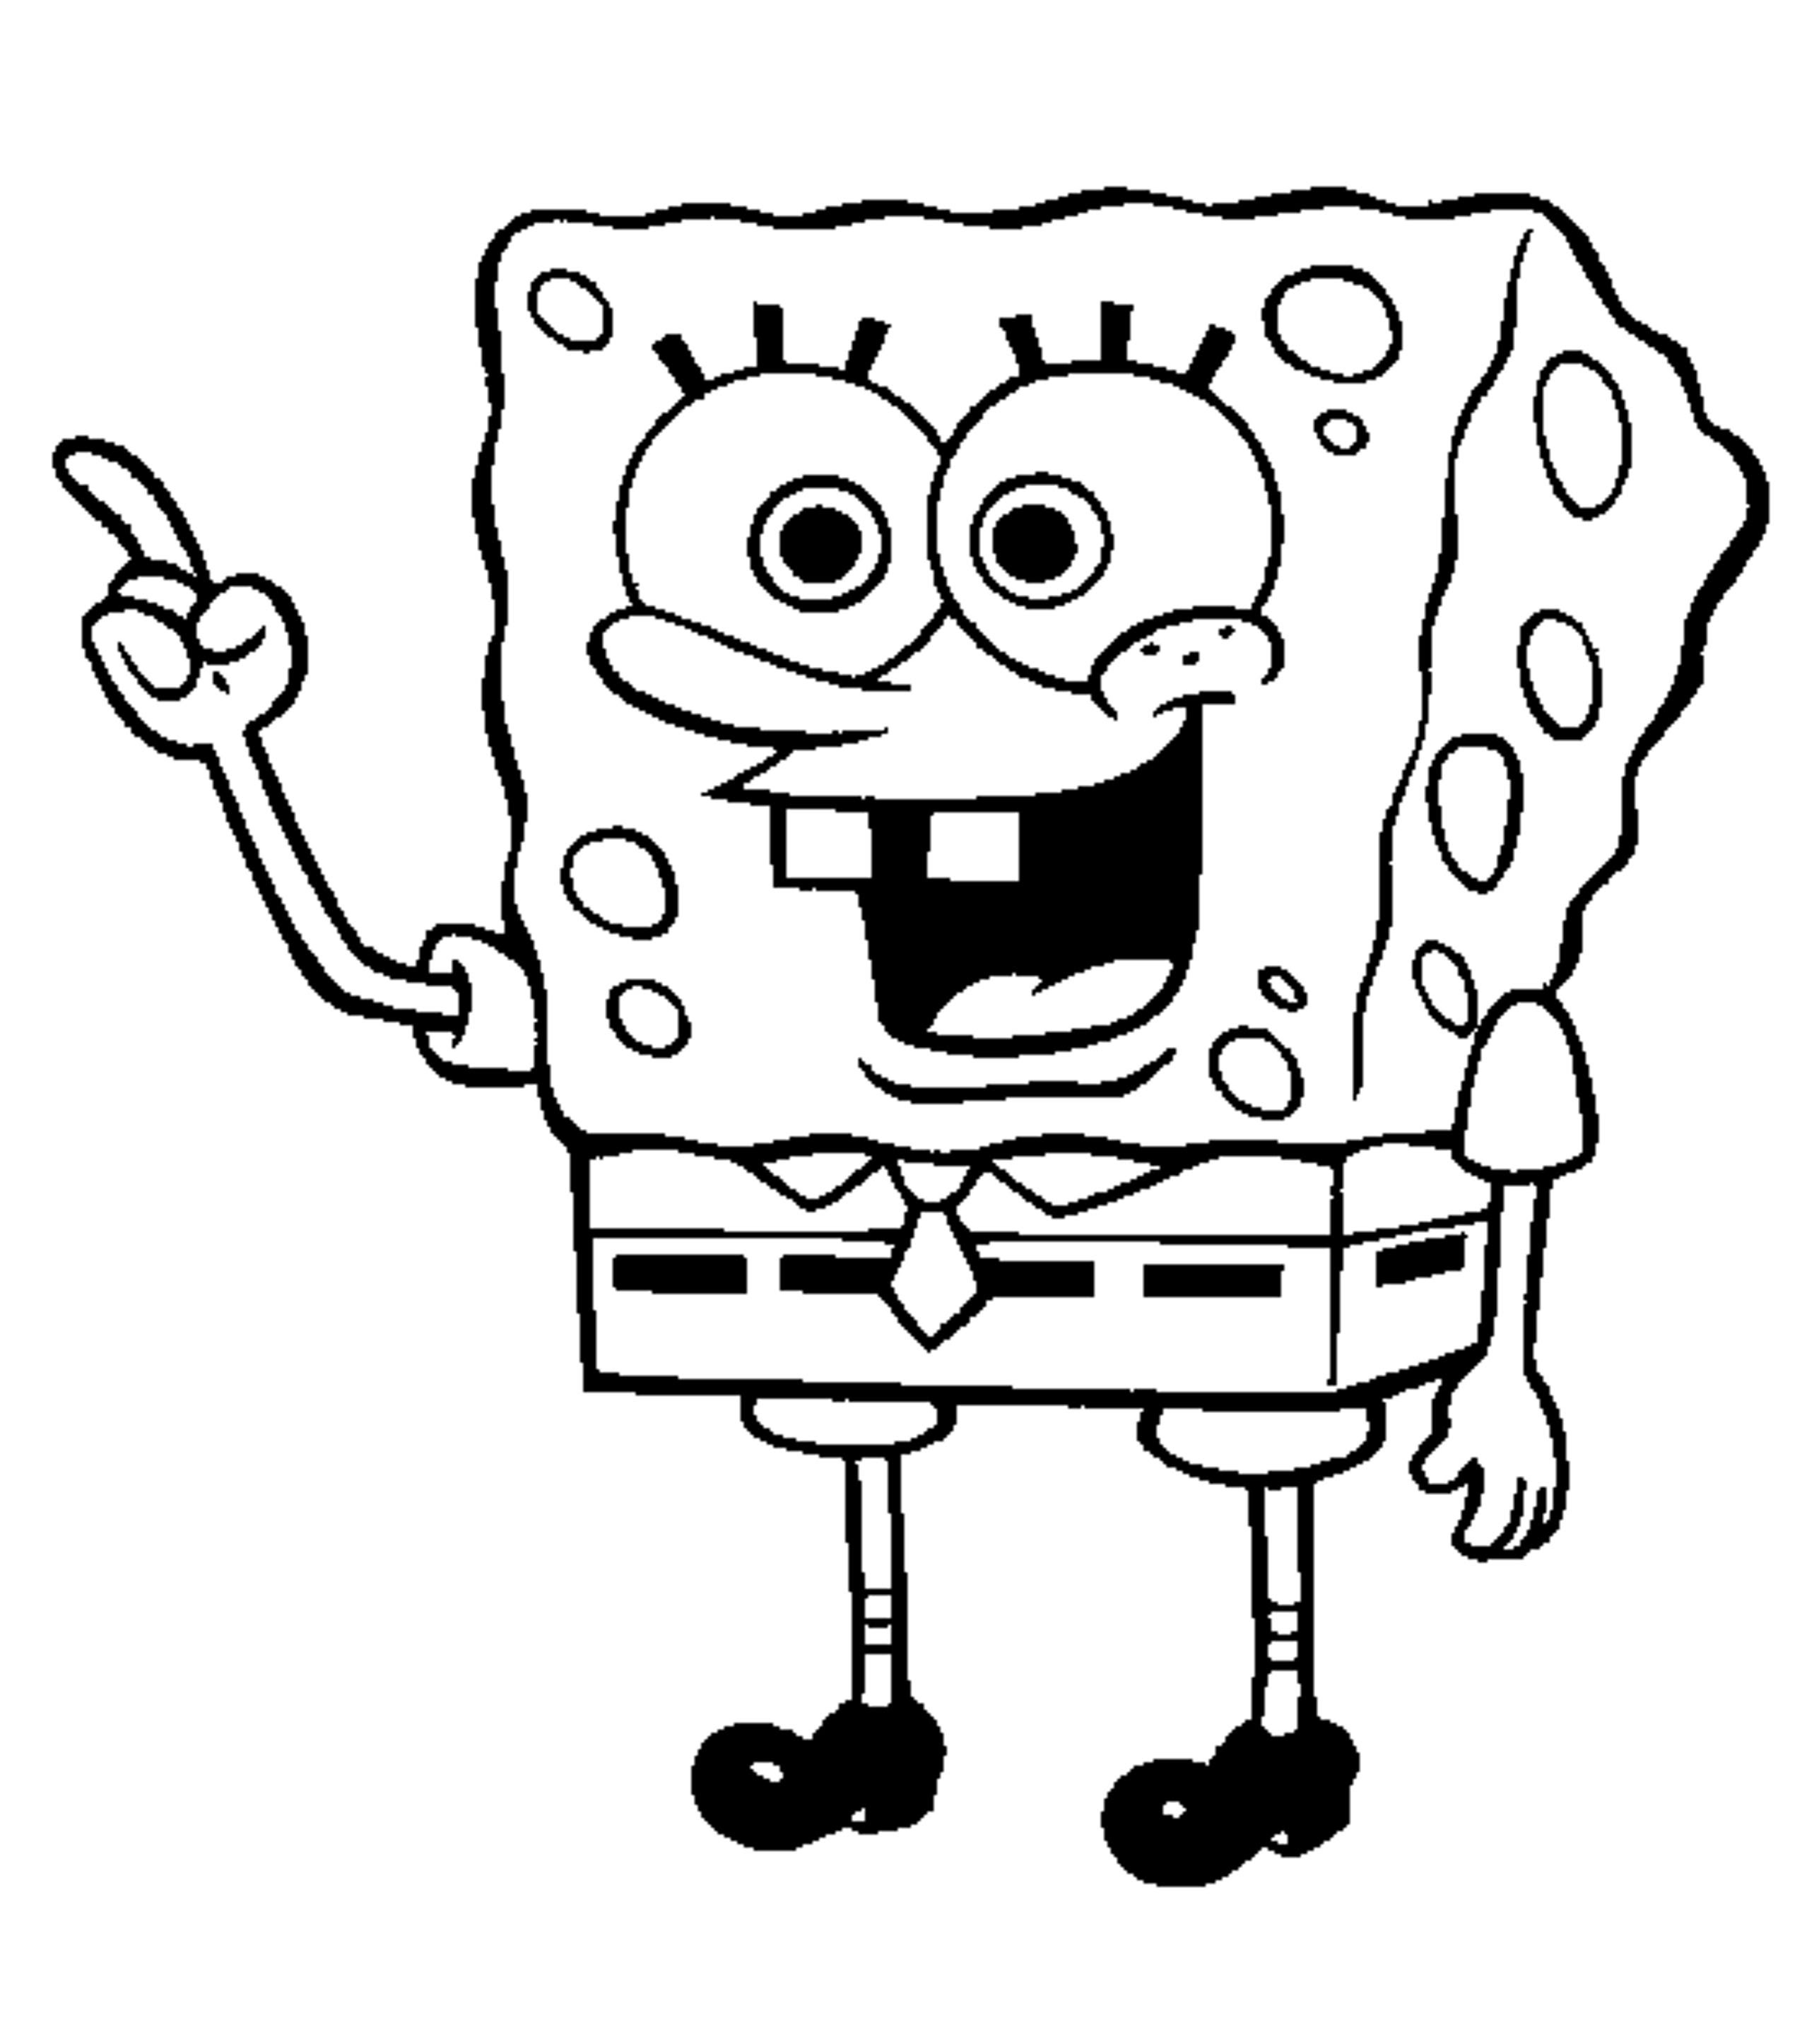 620 Coloring Pages Of Spongebob Squarepants For Free